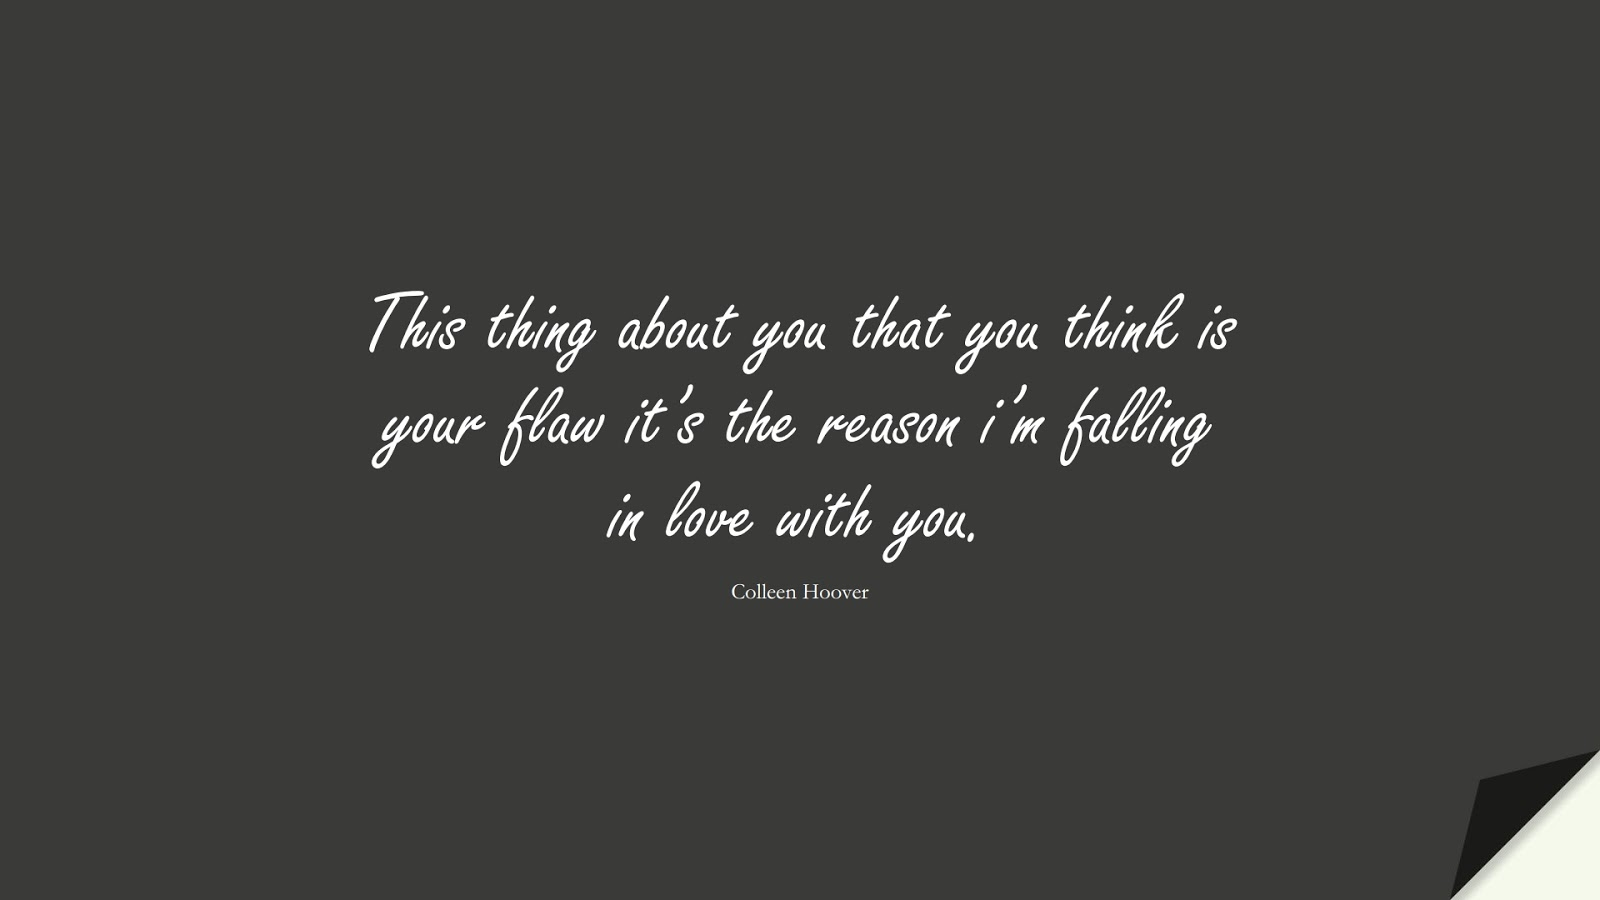 This thing about you that you think is your flaw it's the reason i'm falling in love with you. (Colleen Hoover);  #LoveQuotes